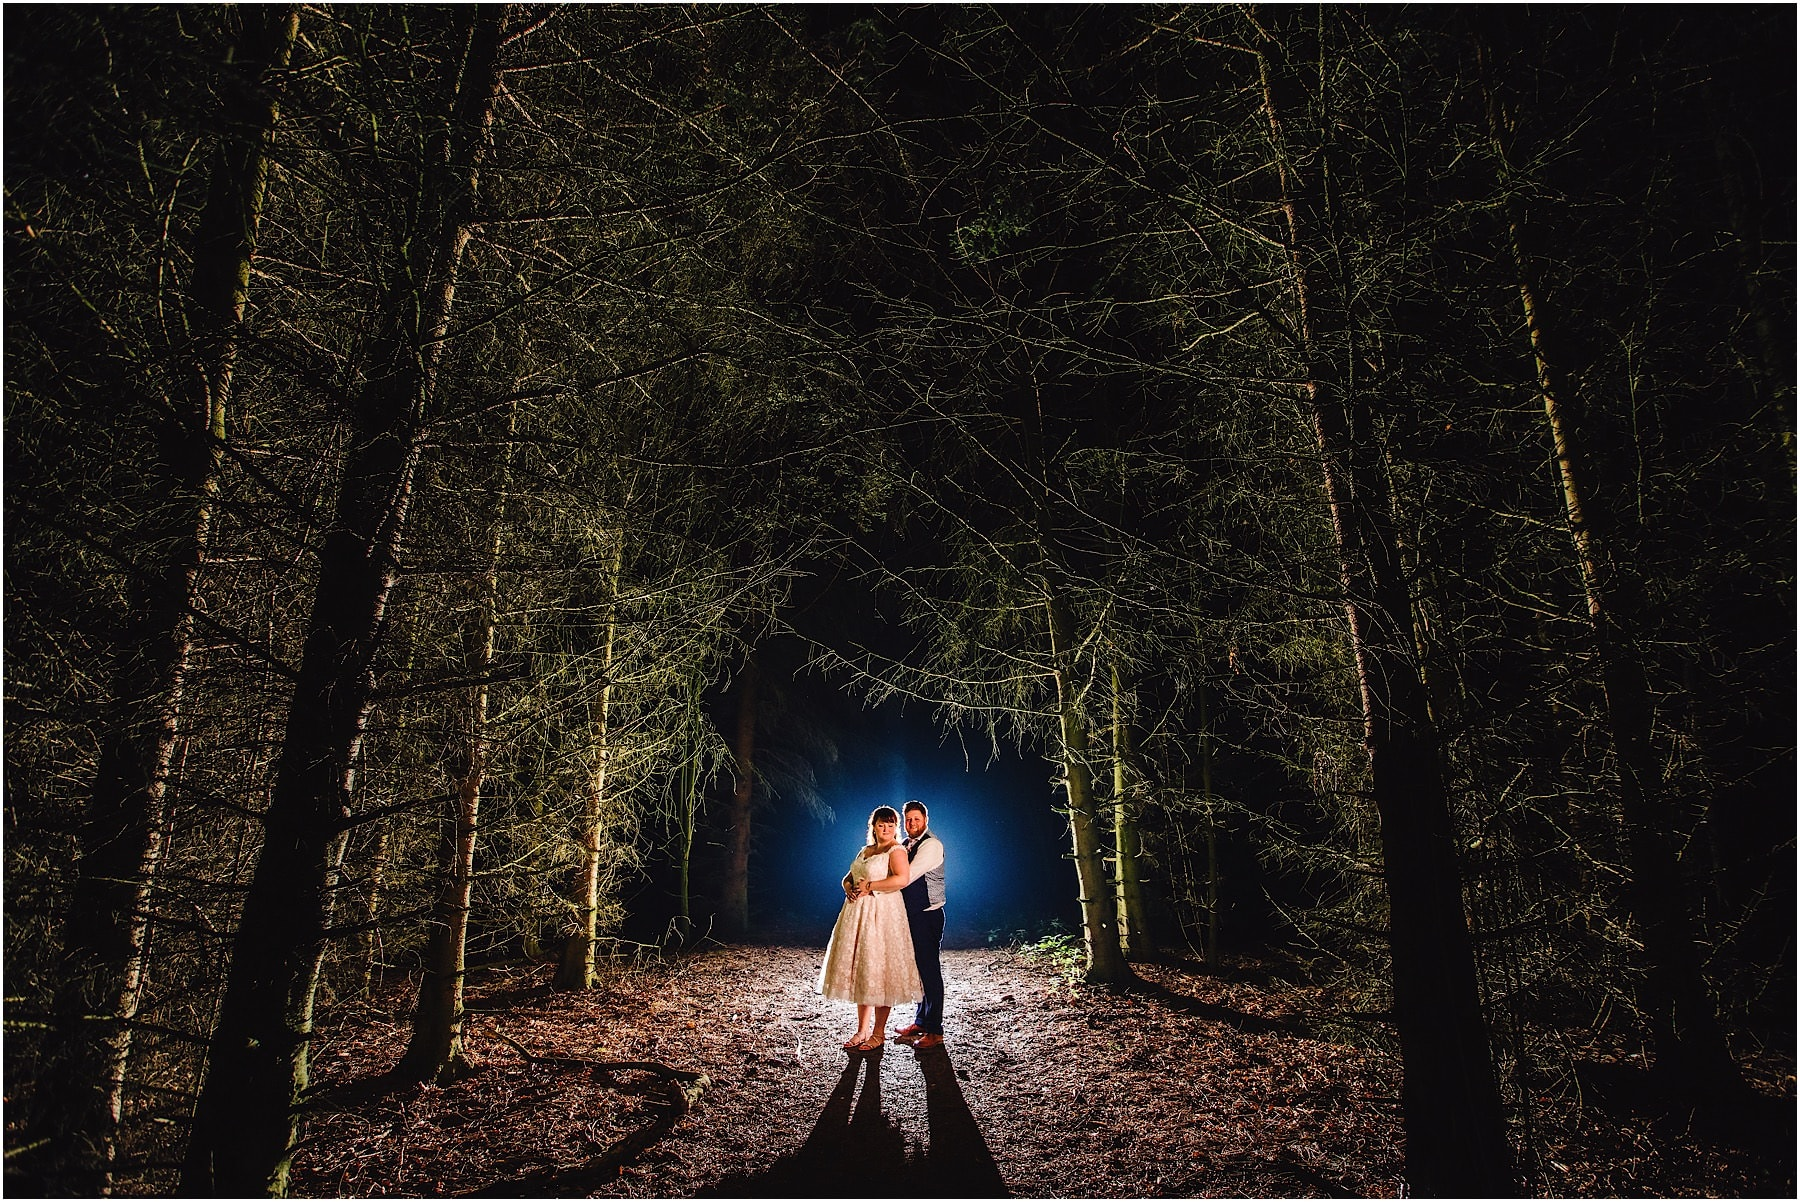 Bride and groom in the trees at night